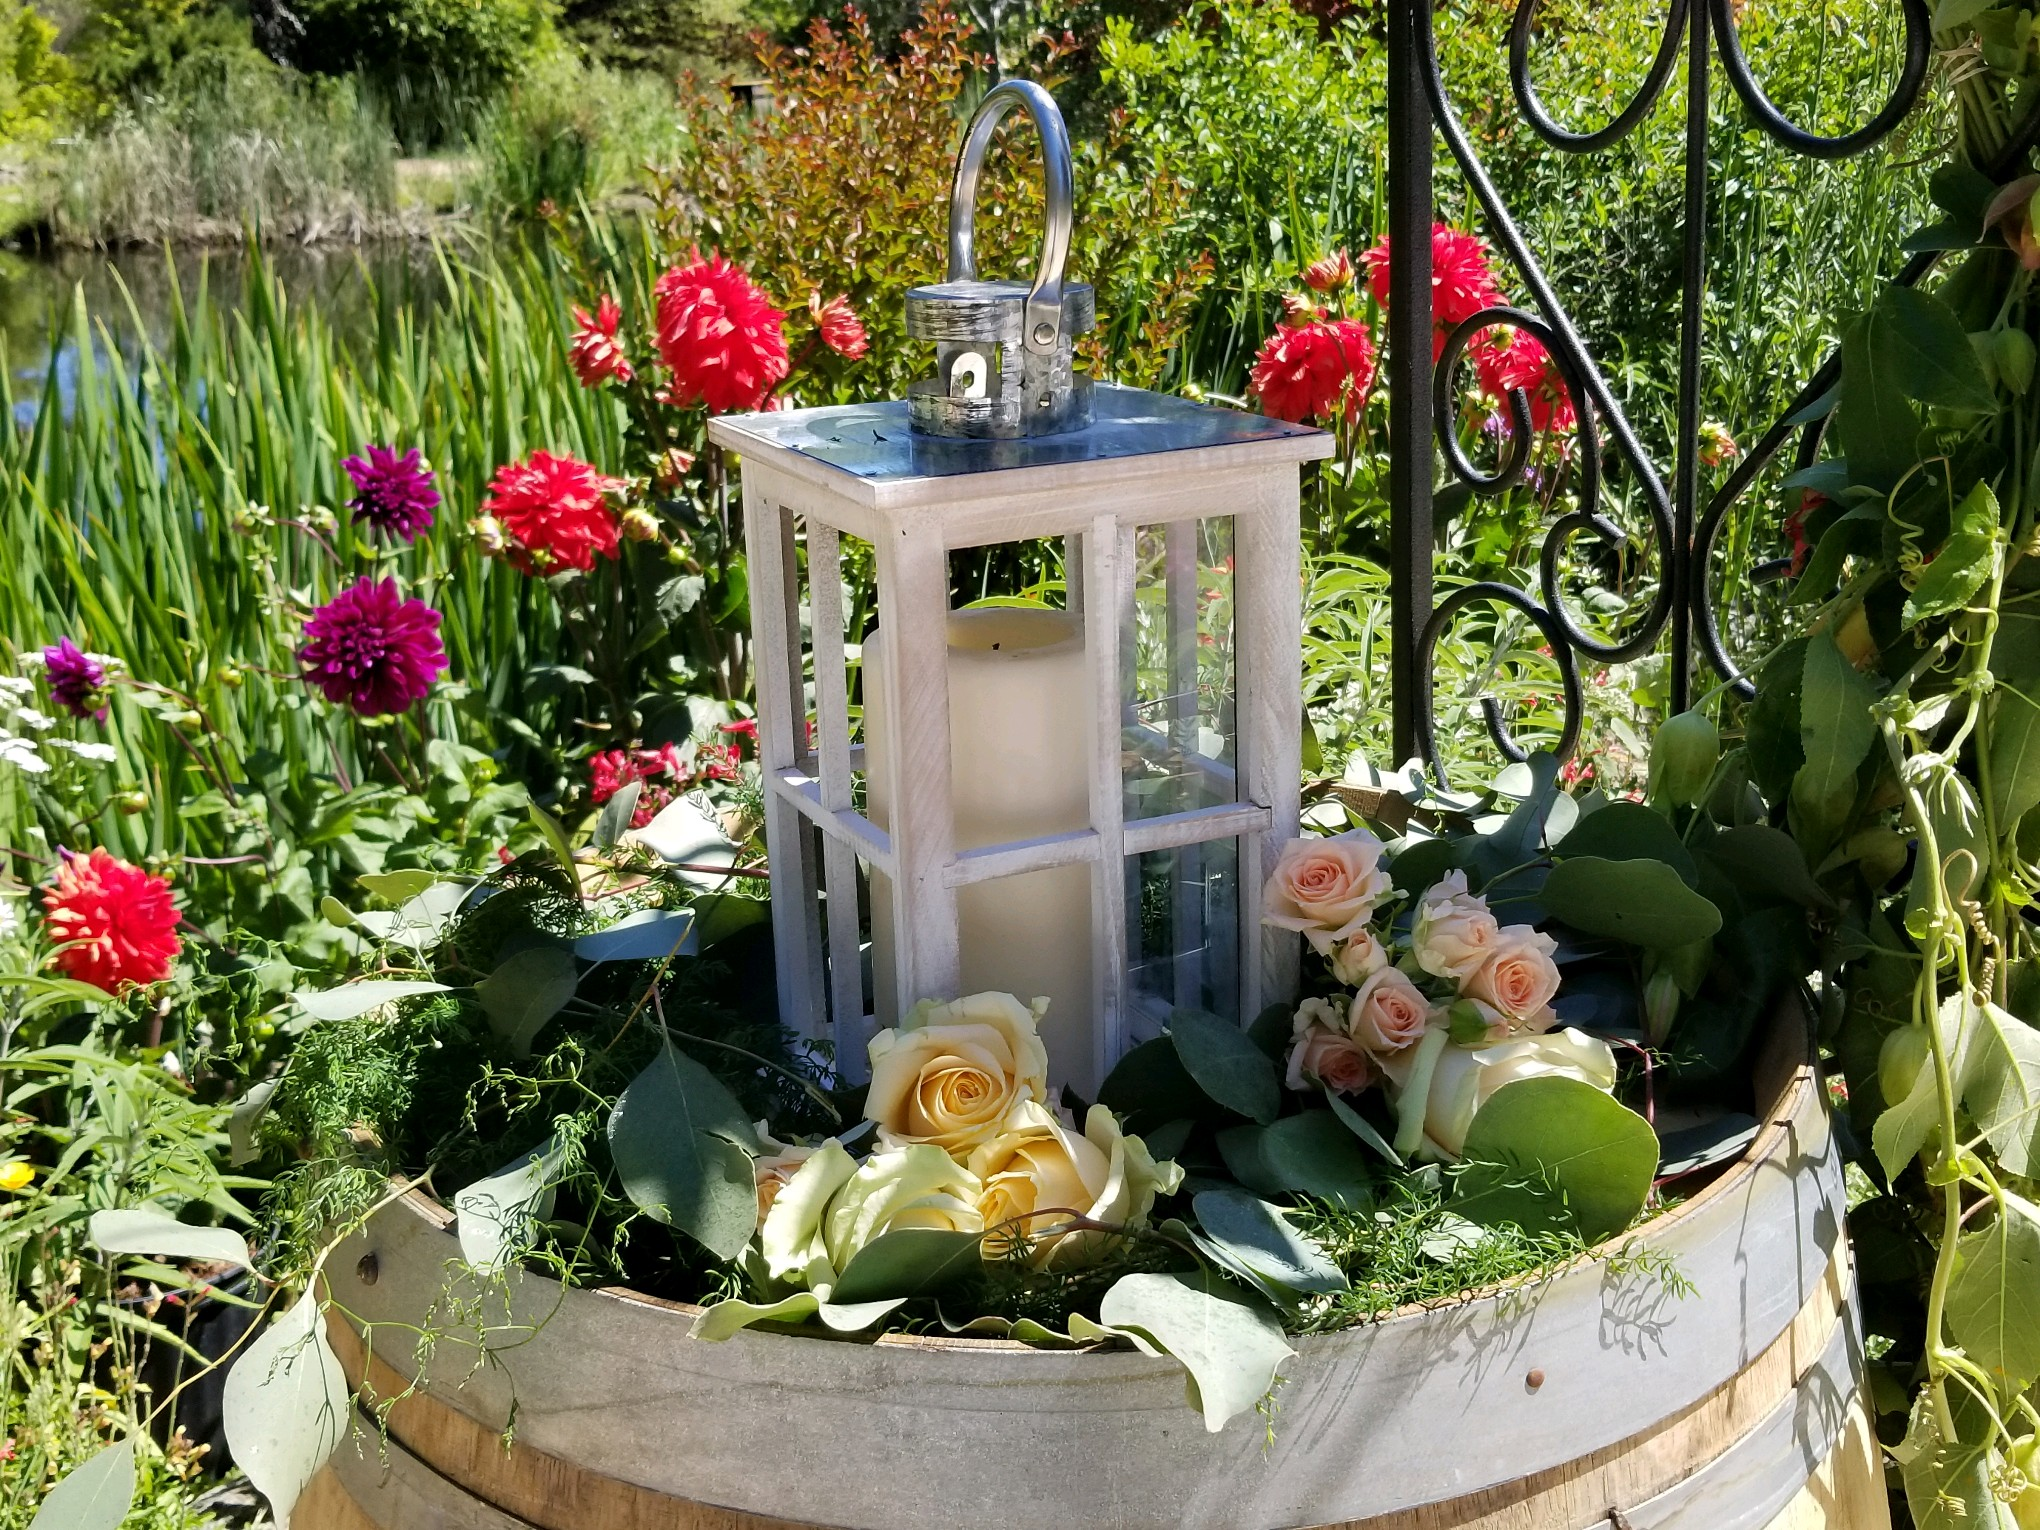 Hans Fahden wedding ceremony by the pond. Wine barrel topper featuring white rustic lantern and romantic flowers and greens.